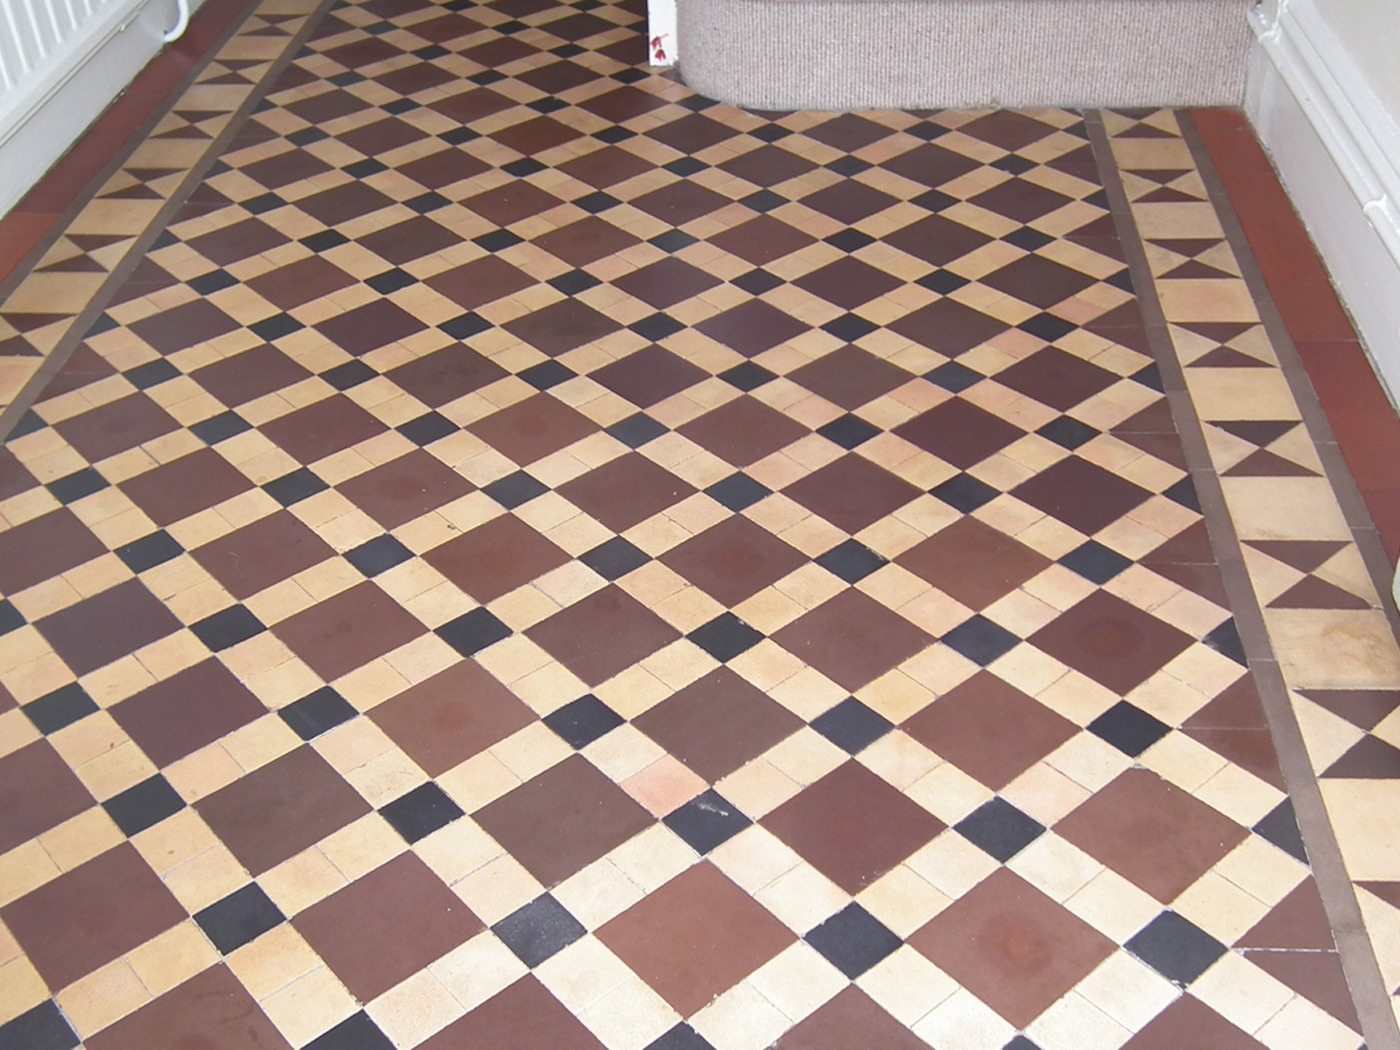 Victorian And Edwardian Floor Tile Cleaning Dempster Mosaic London